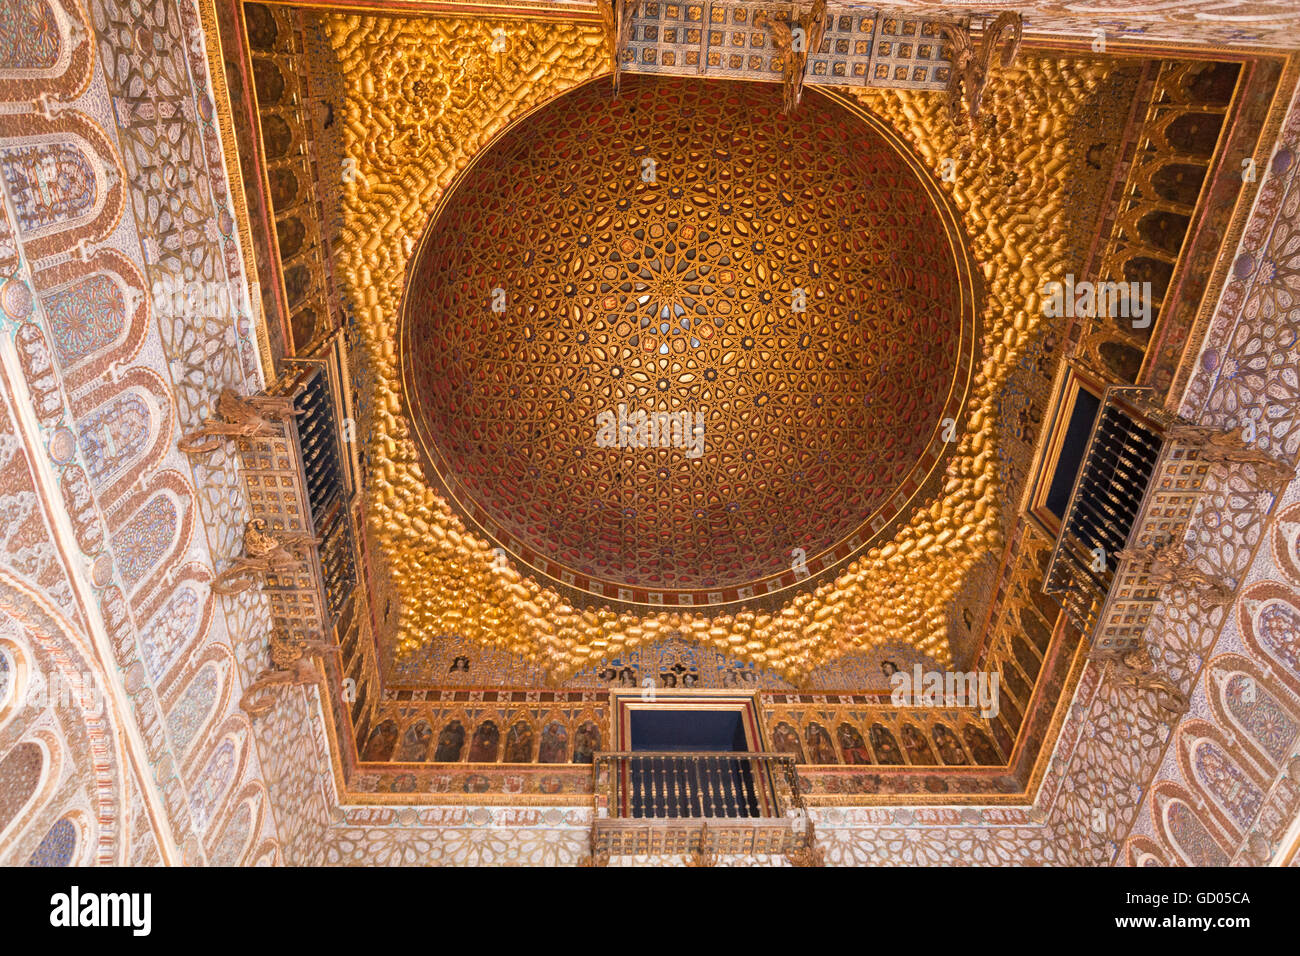 The golden dome of the Salon de los Embajadores (Hall of Stock Photo, Royalty...